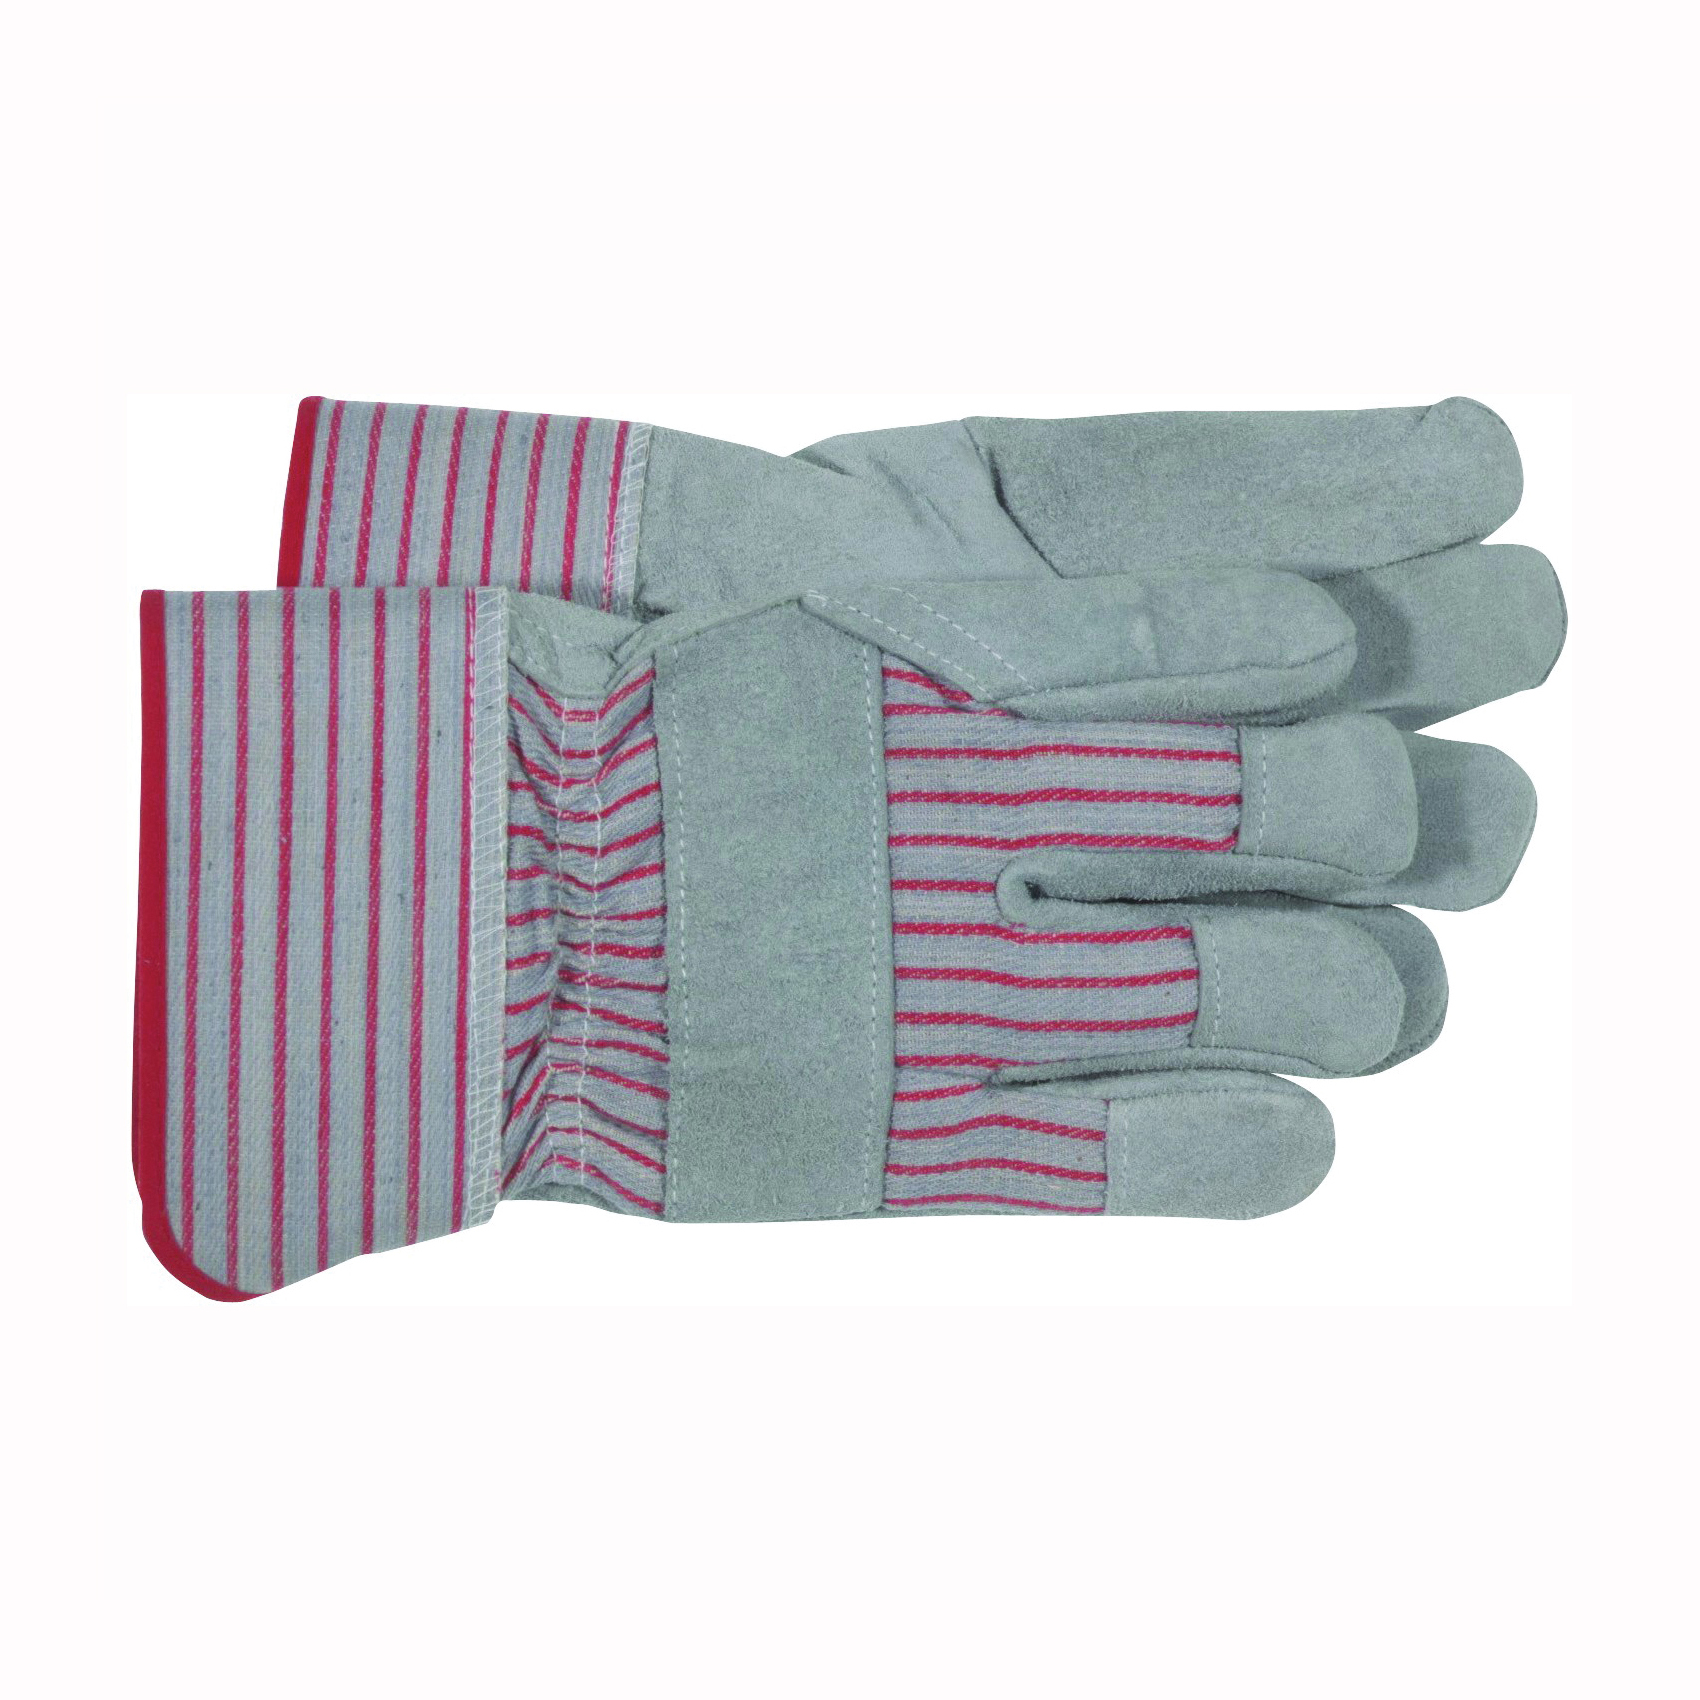 Picture of BOSS 4092 Driver Gloves, Men's, L, Wing Thumb, Rubberized Safety Cuff, Gray/Red